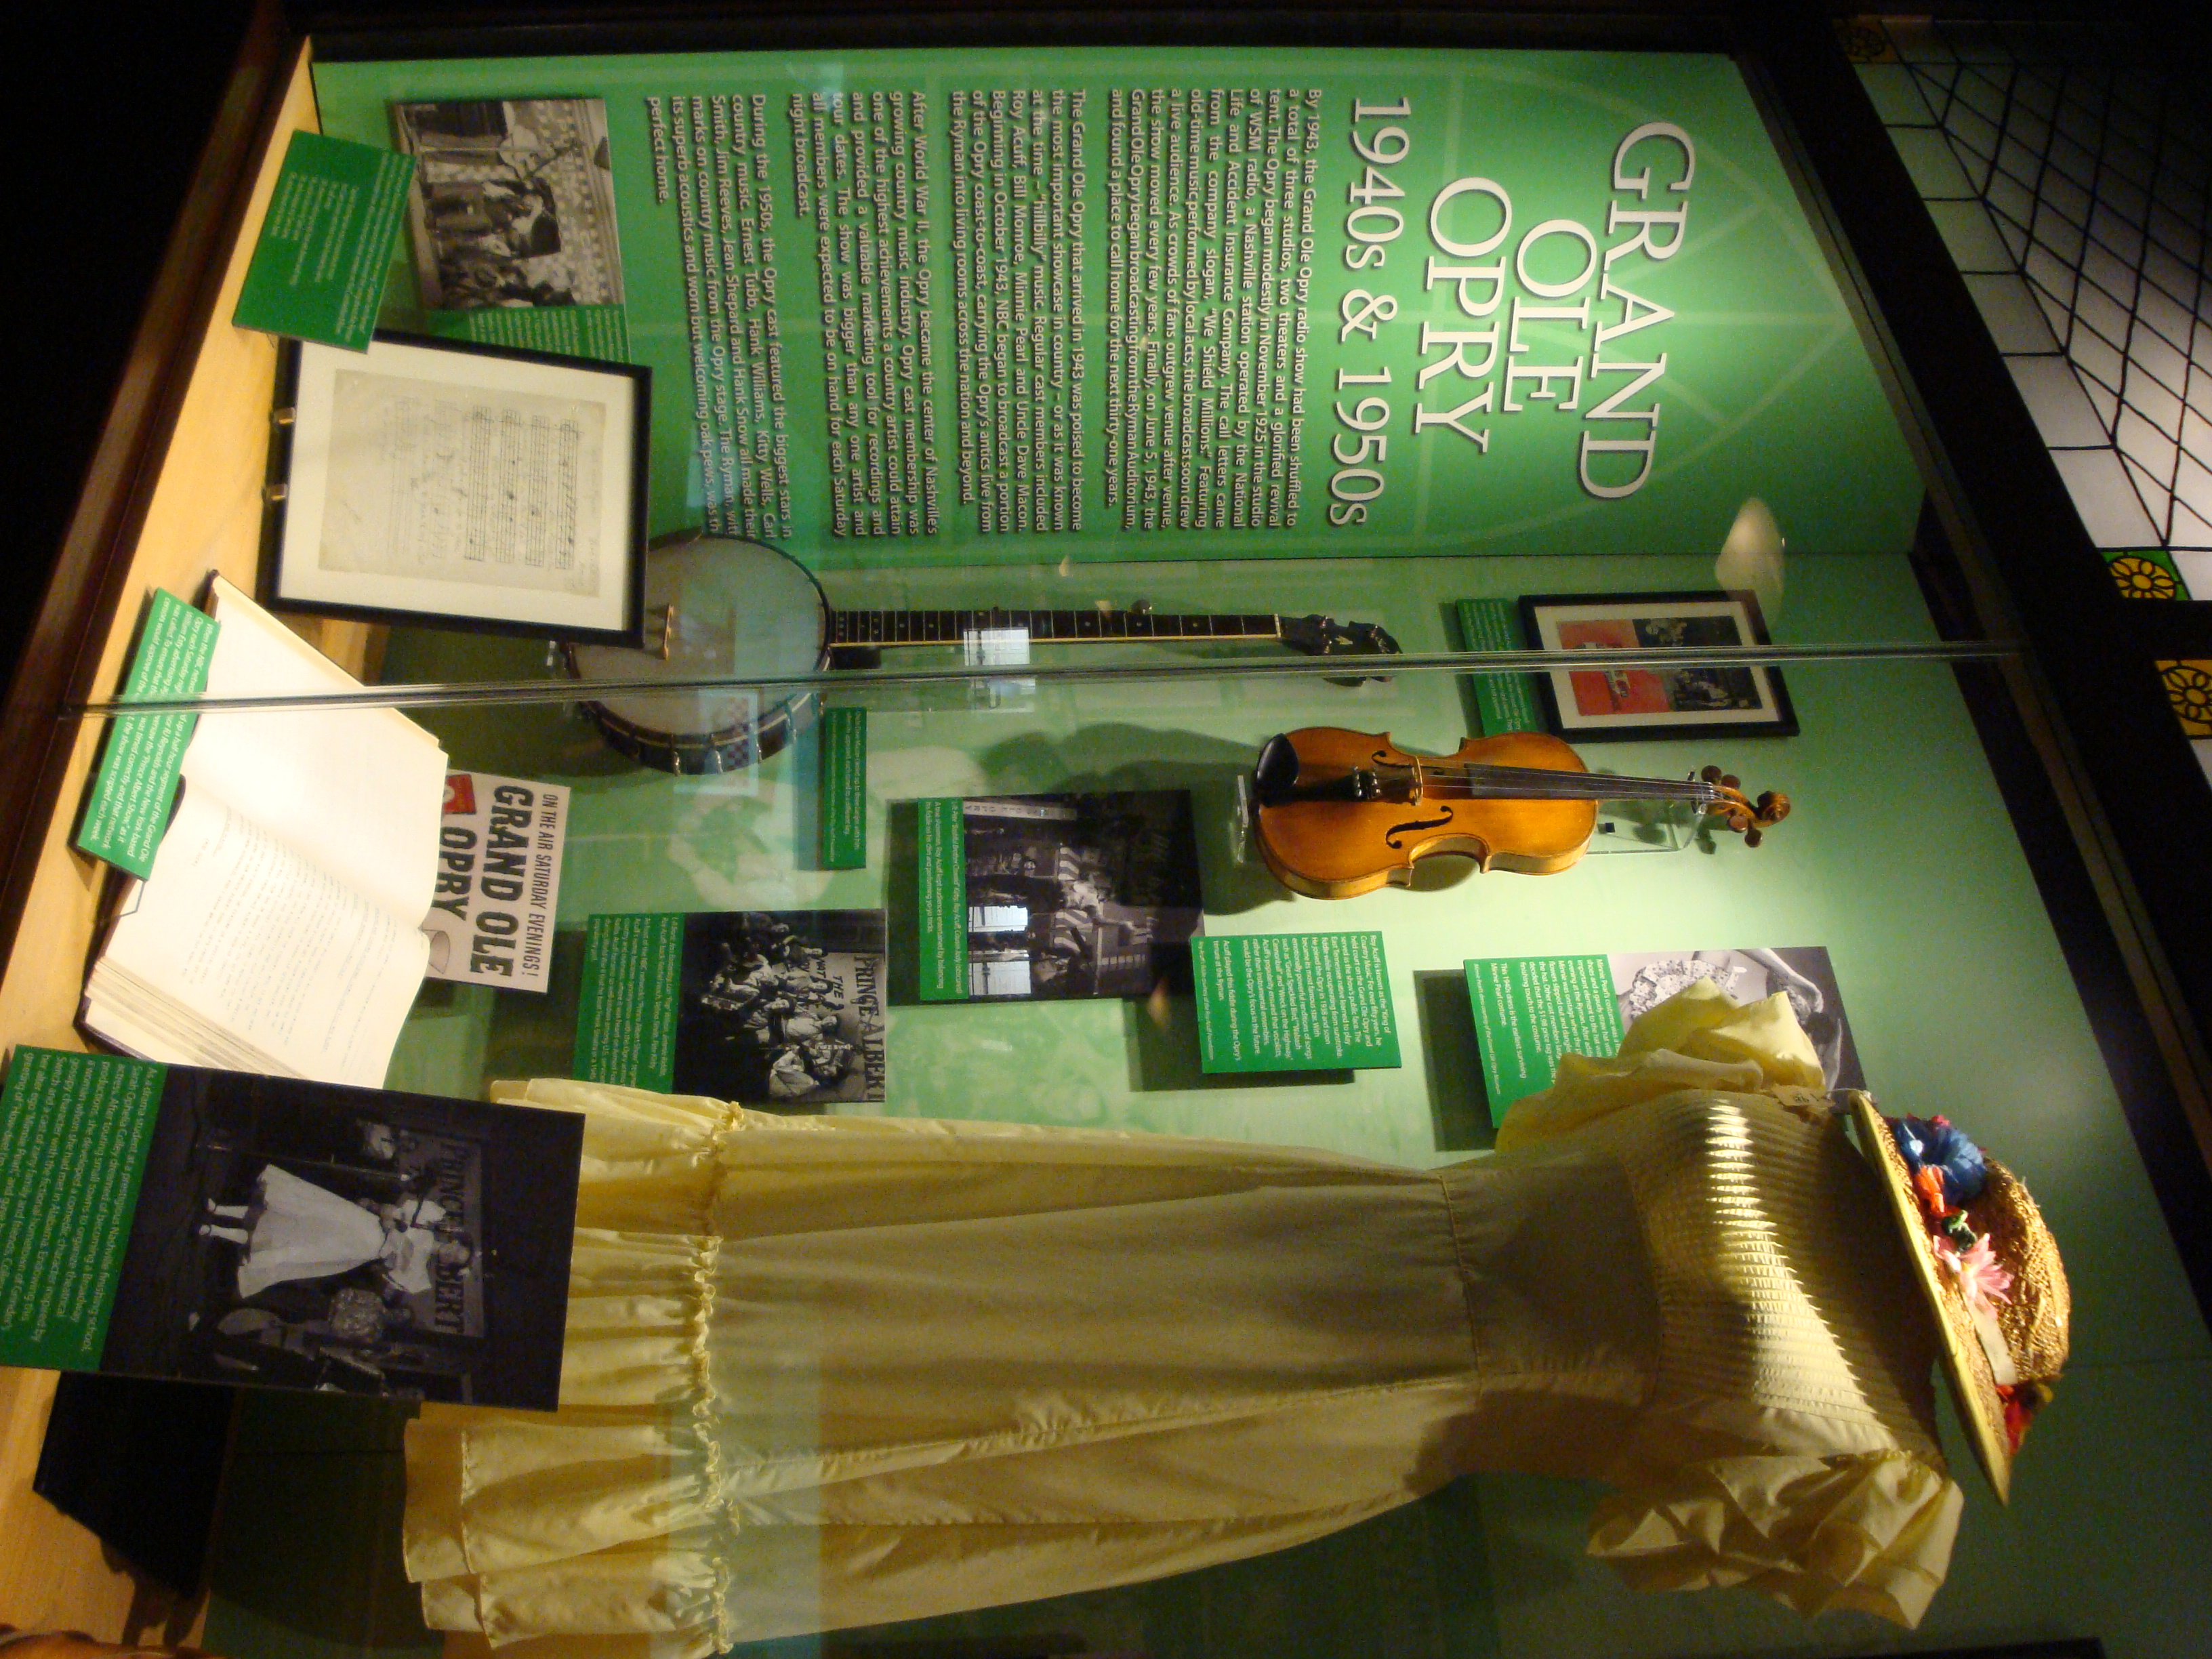 Display case at the Ryman Auditorium in Nashville